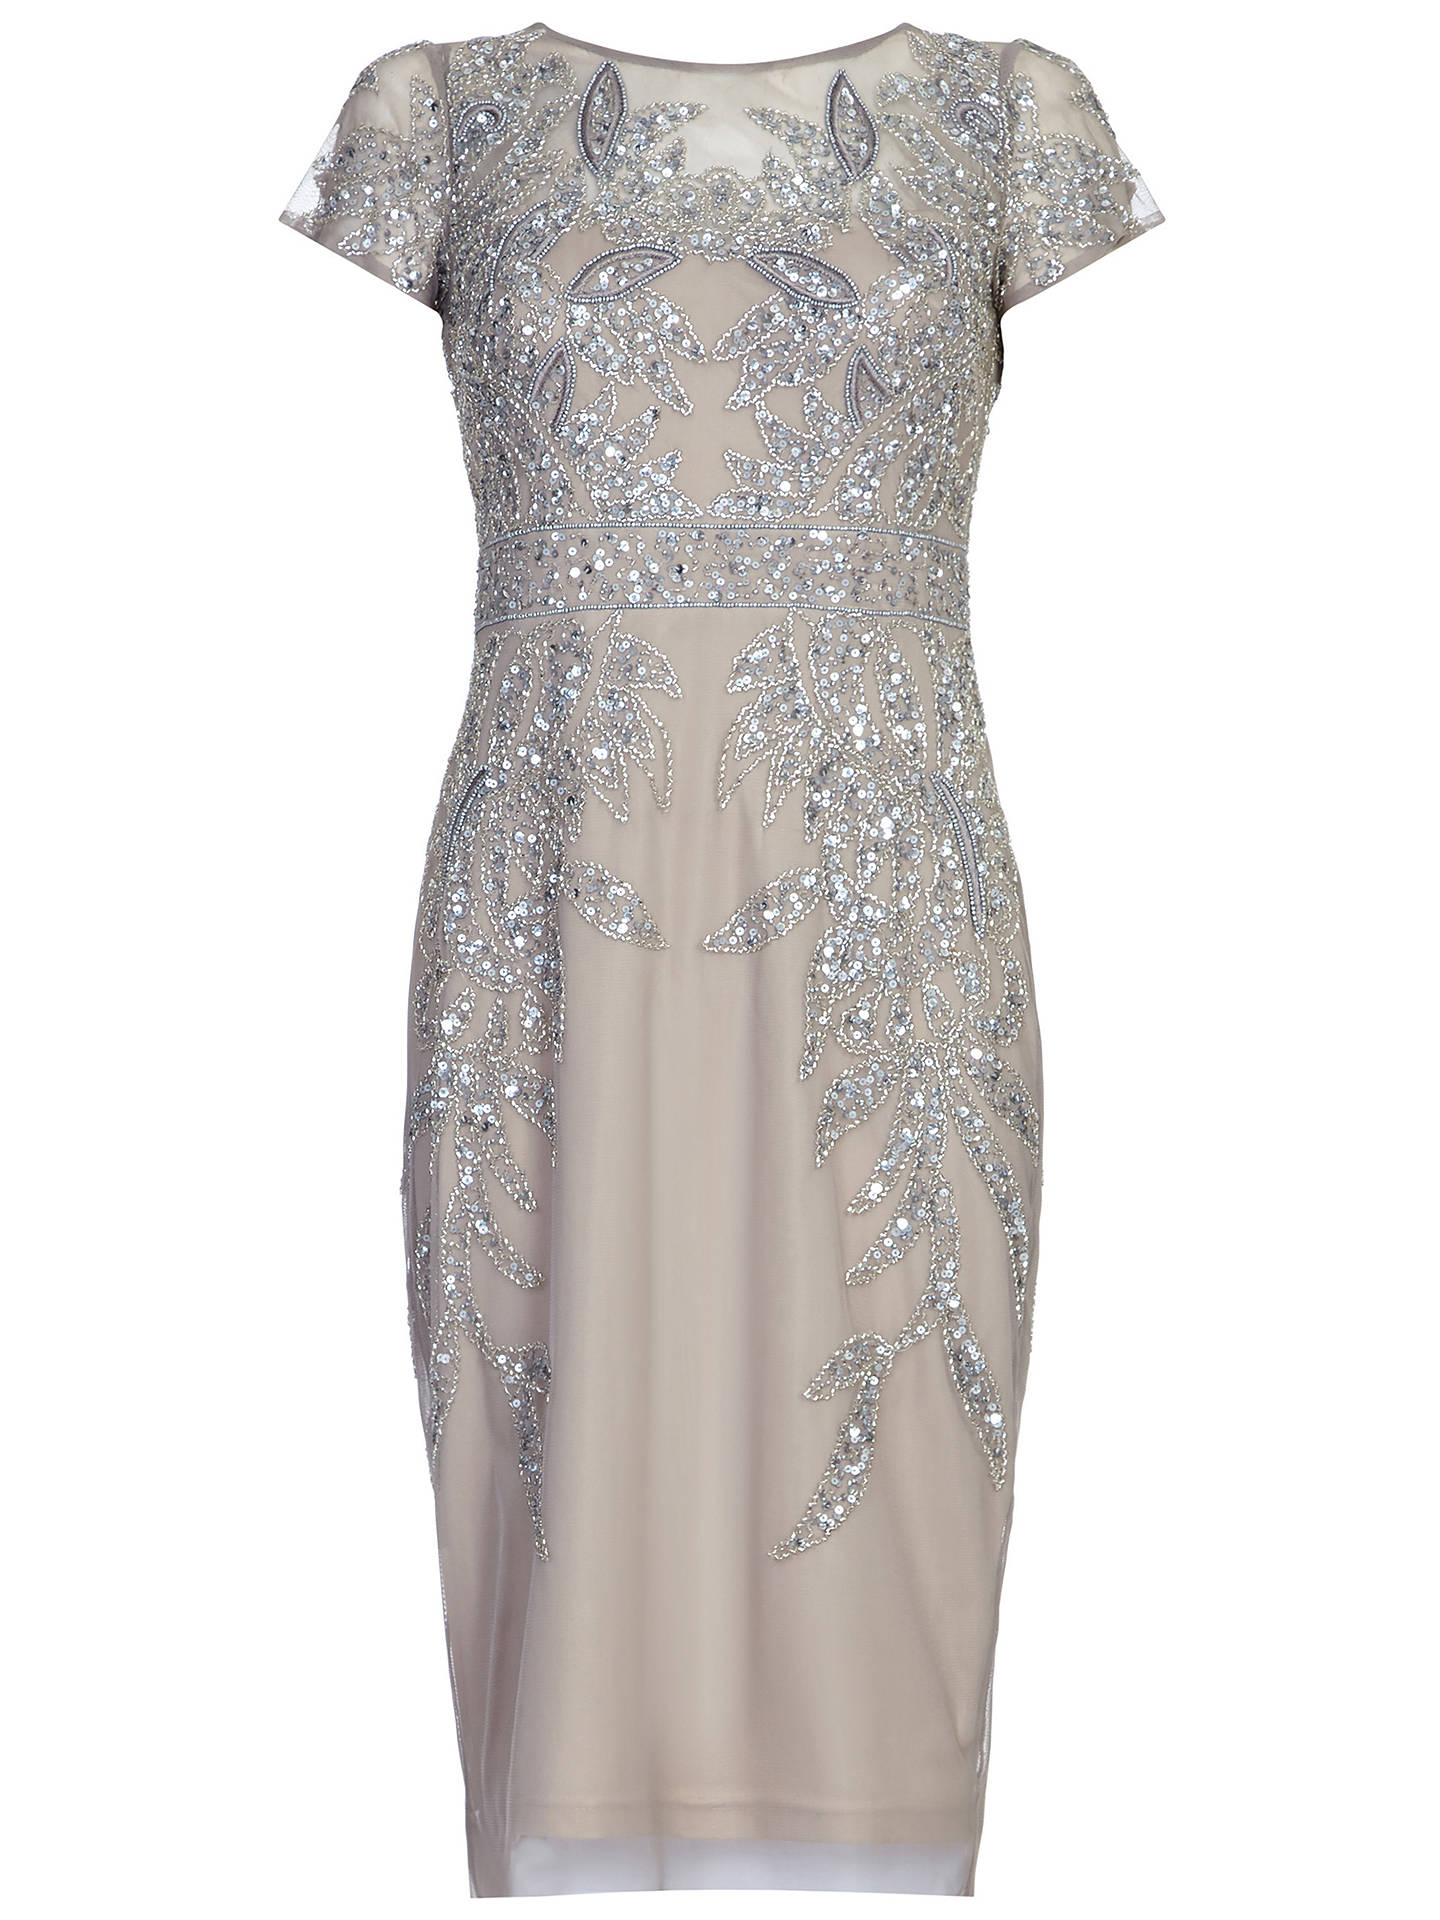 8242ea2d811 Adrianna Papell Short Sleeve Beaded Cocktail Dress at John Lewis ...